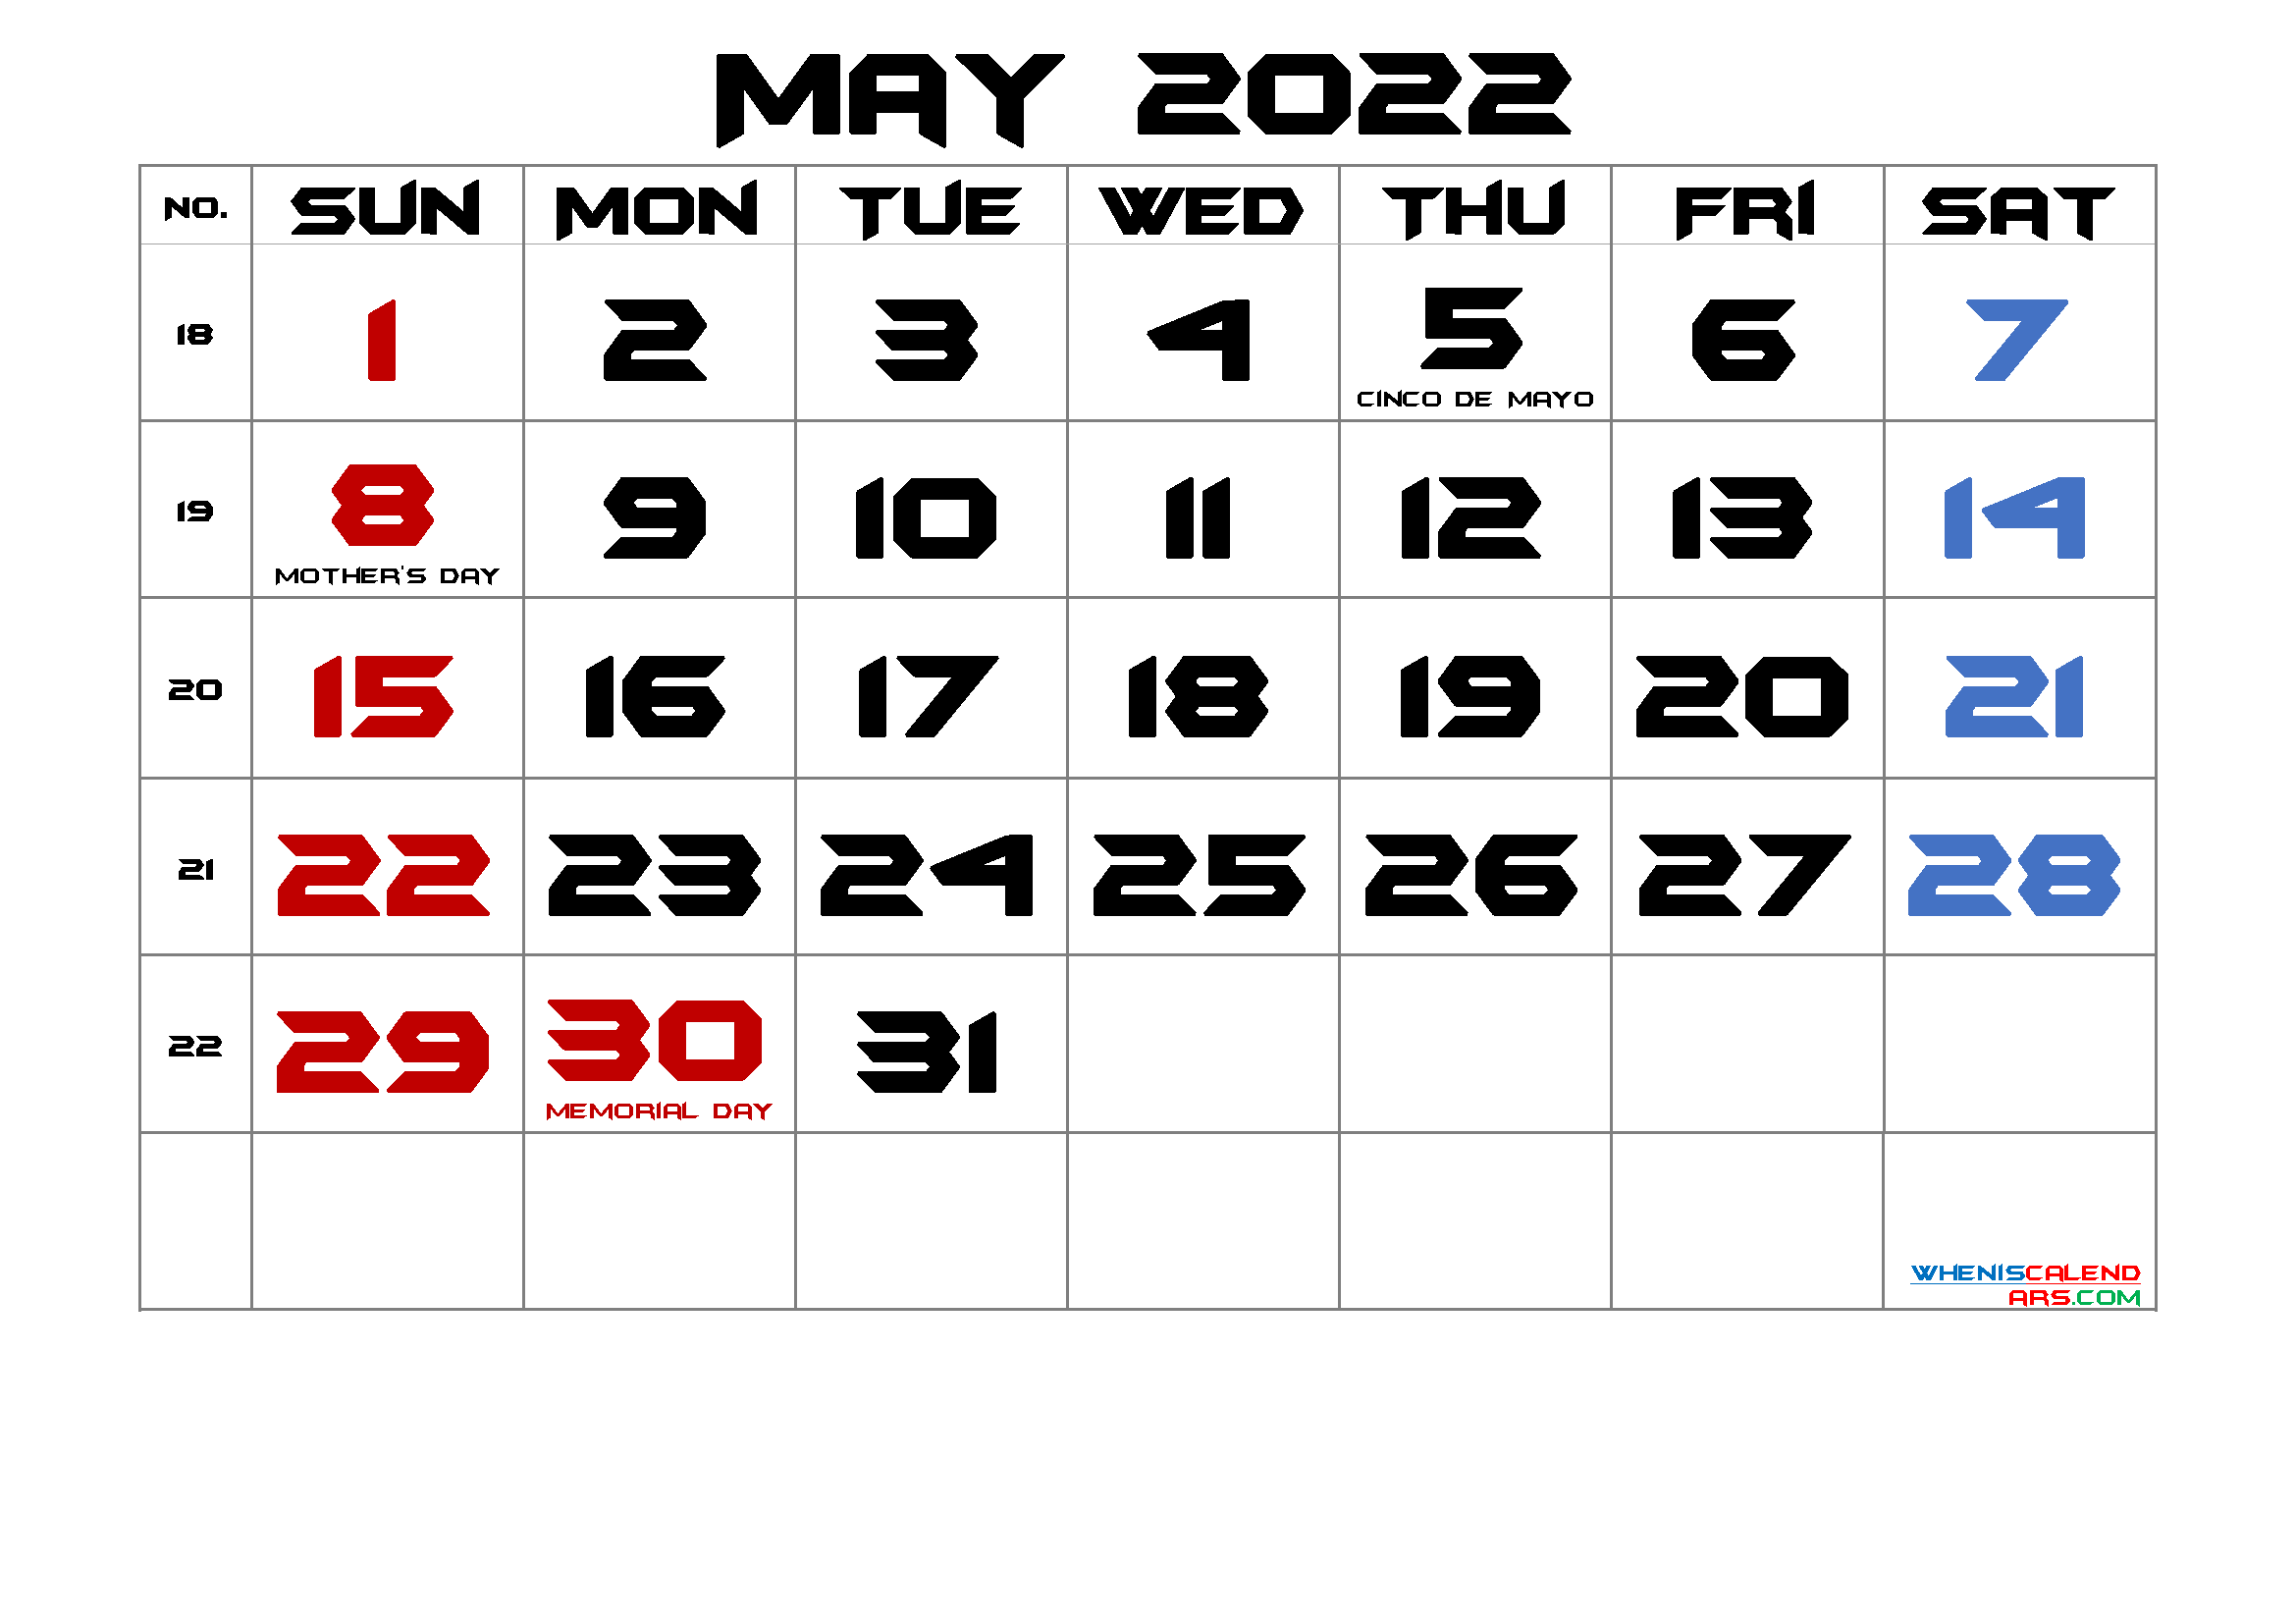 MAY 2022 Printable Calendar with Holidays